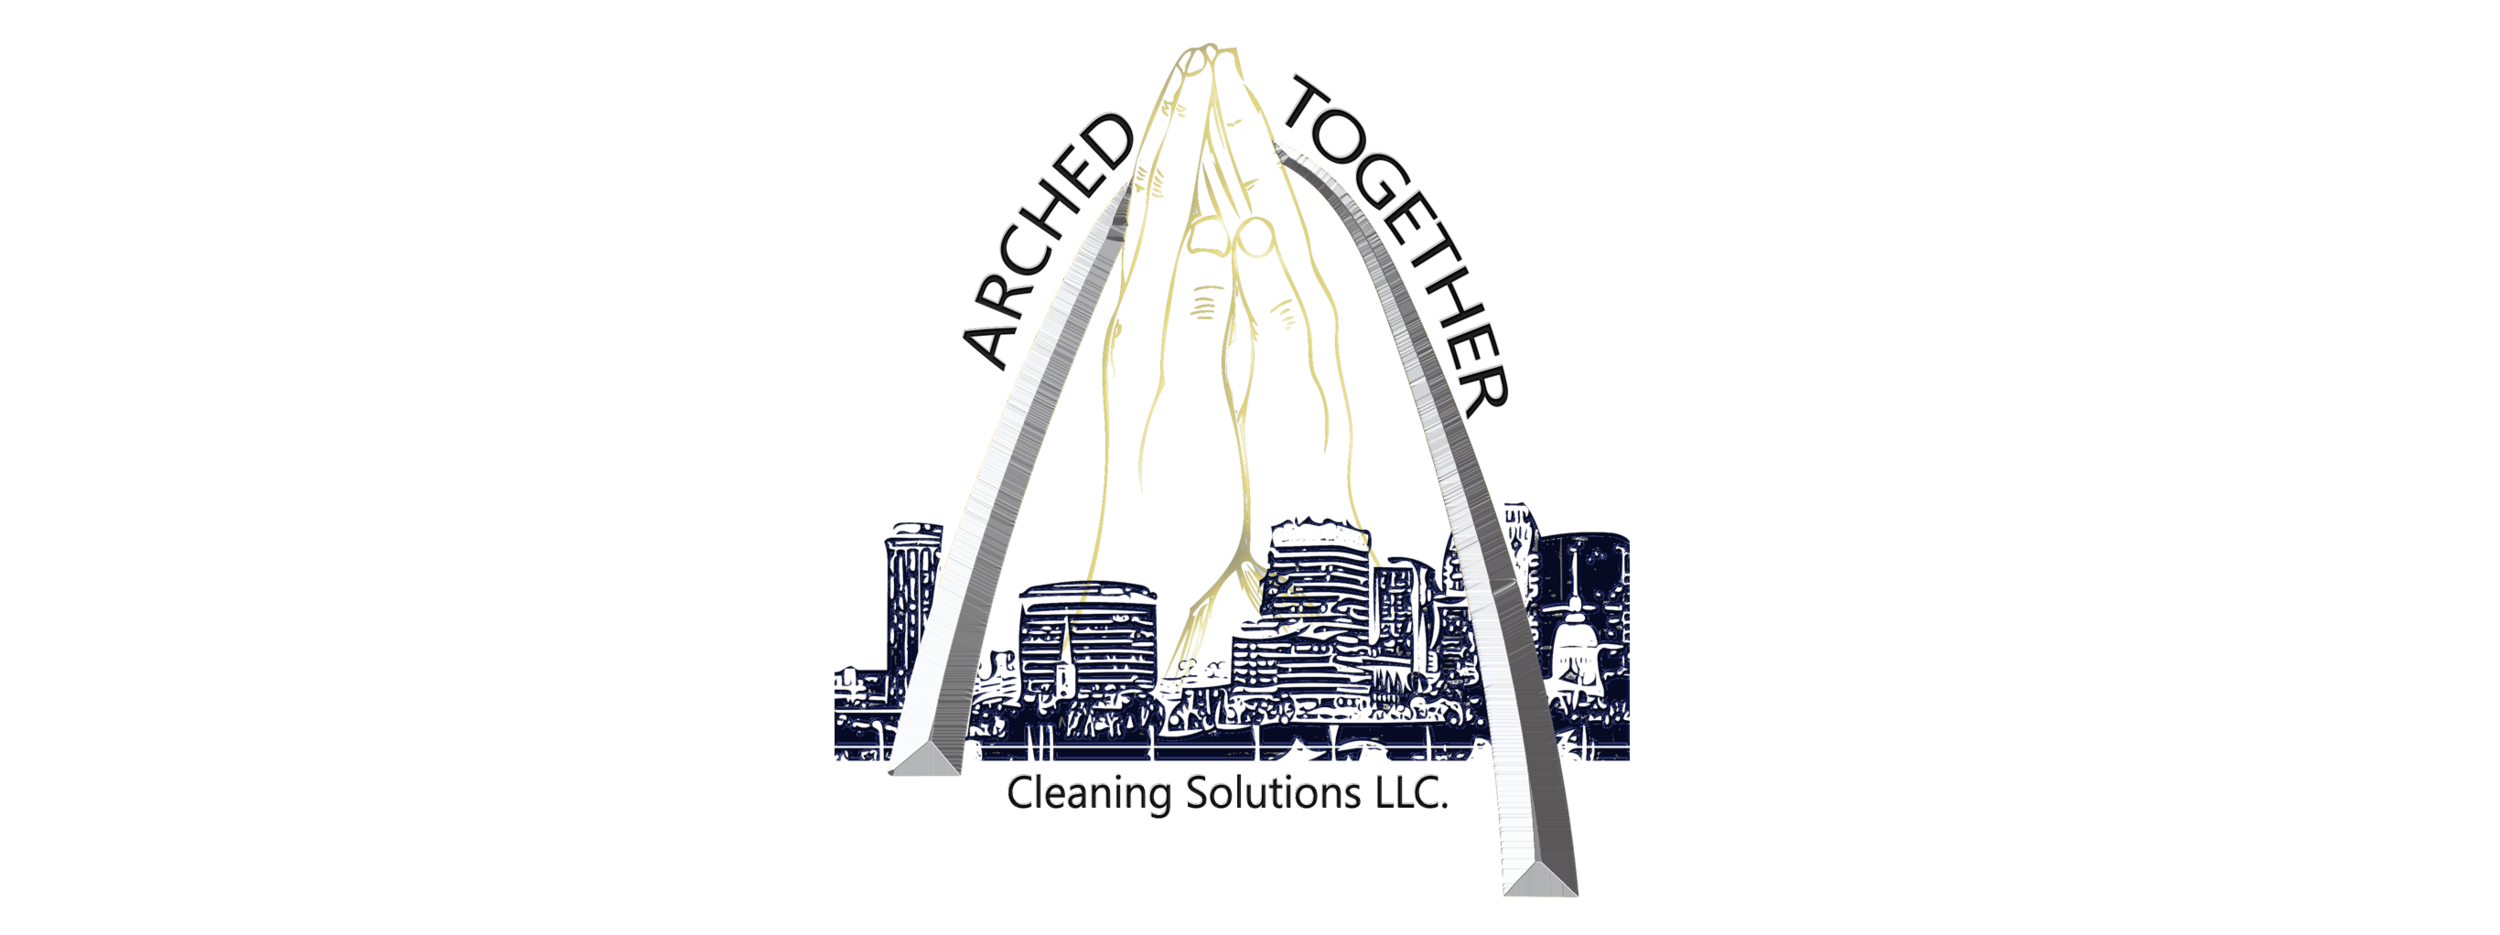 archway-together-Recovered.png